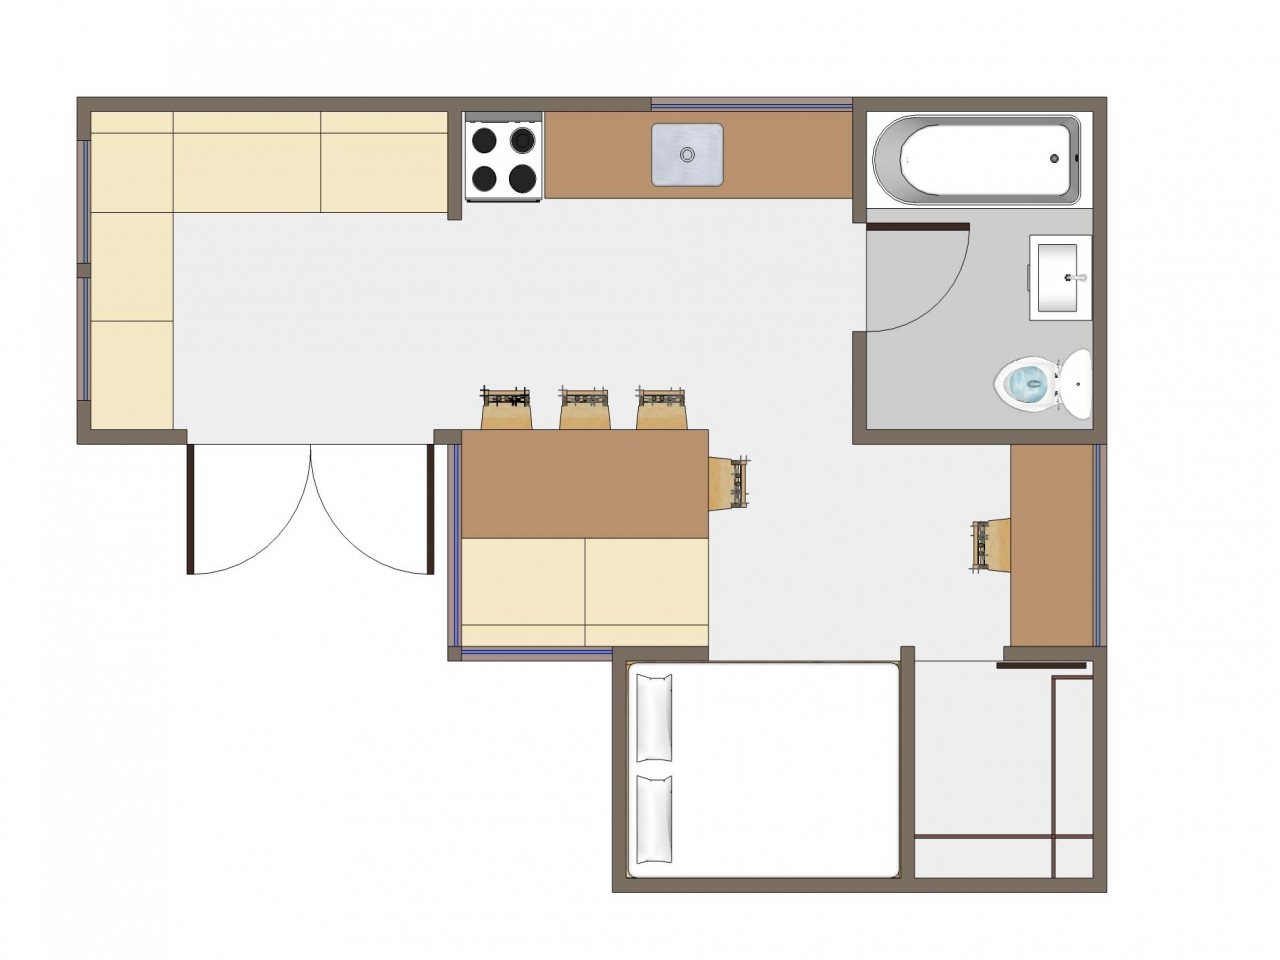 electrical blueprints for 3 bedroom house plans html with Dc4e3ee3a72ff03c Tiny House Floor Plans Tiny House Interior on Nestle Toll House Cookie also 9d47a1dff8bfbceb Home Structural Design Engineering Civil Engineering together with Cc5402c099efbe3e Electrical House Plan Design House Wiring Plans together with Daefd1f24d43012f Electrical Floor Plan Drawing Simple Floor Plan Electrical together with 7e52209471daa42c Blueprints For Houses With Open Floor Plans Blueprint House S le Floor Plan.